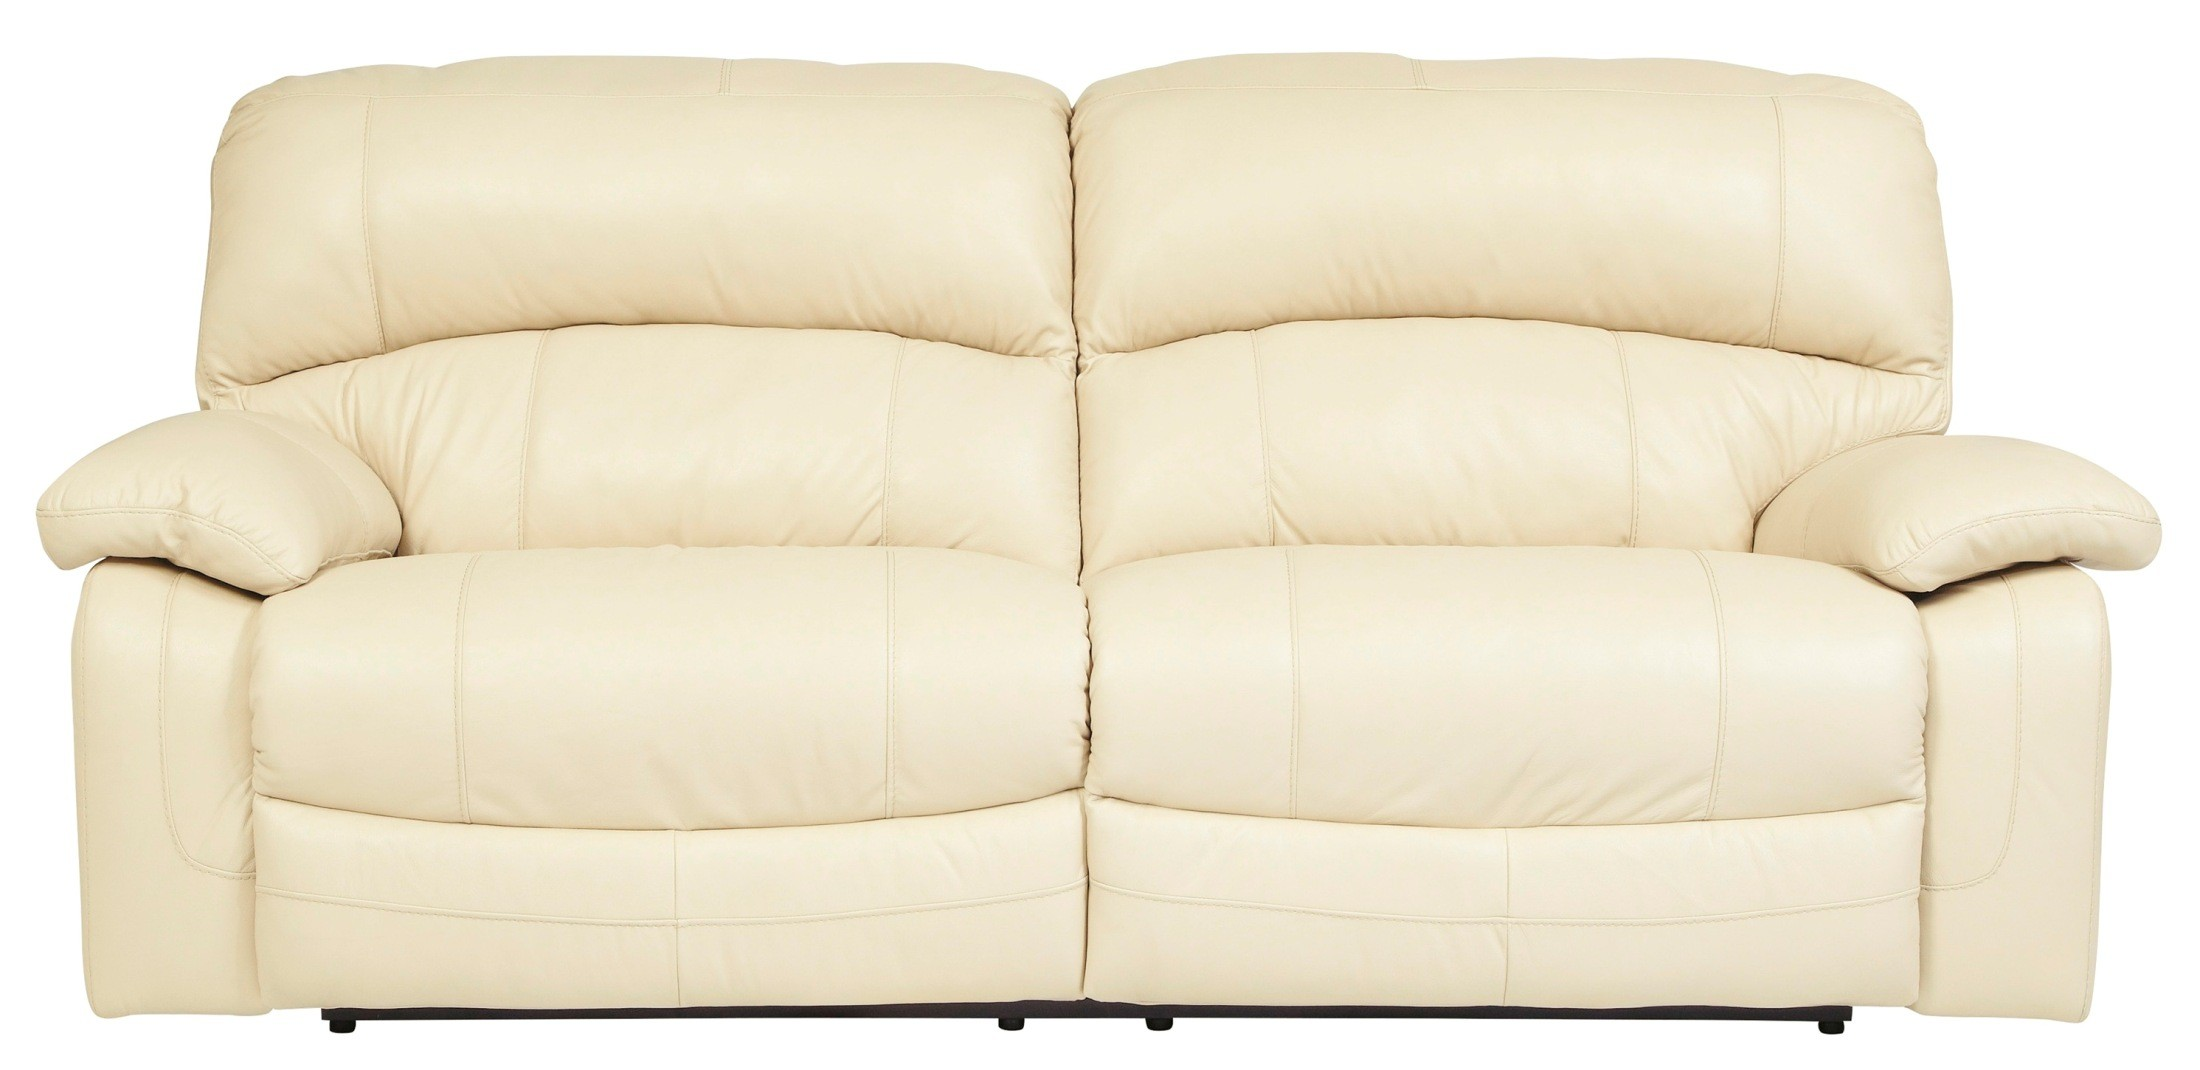 Damacio Cream Reclining Living Room Set from Ashley U 81 43